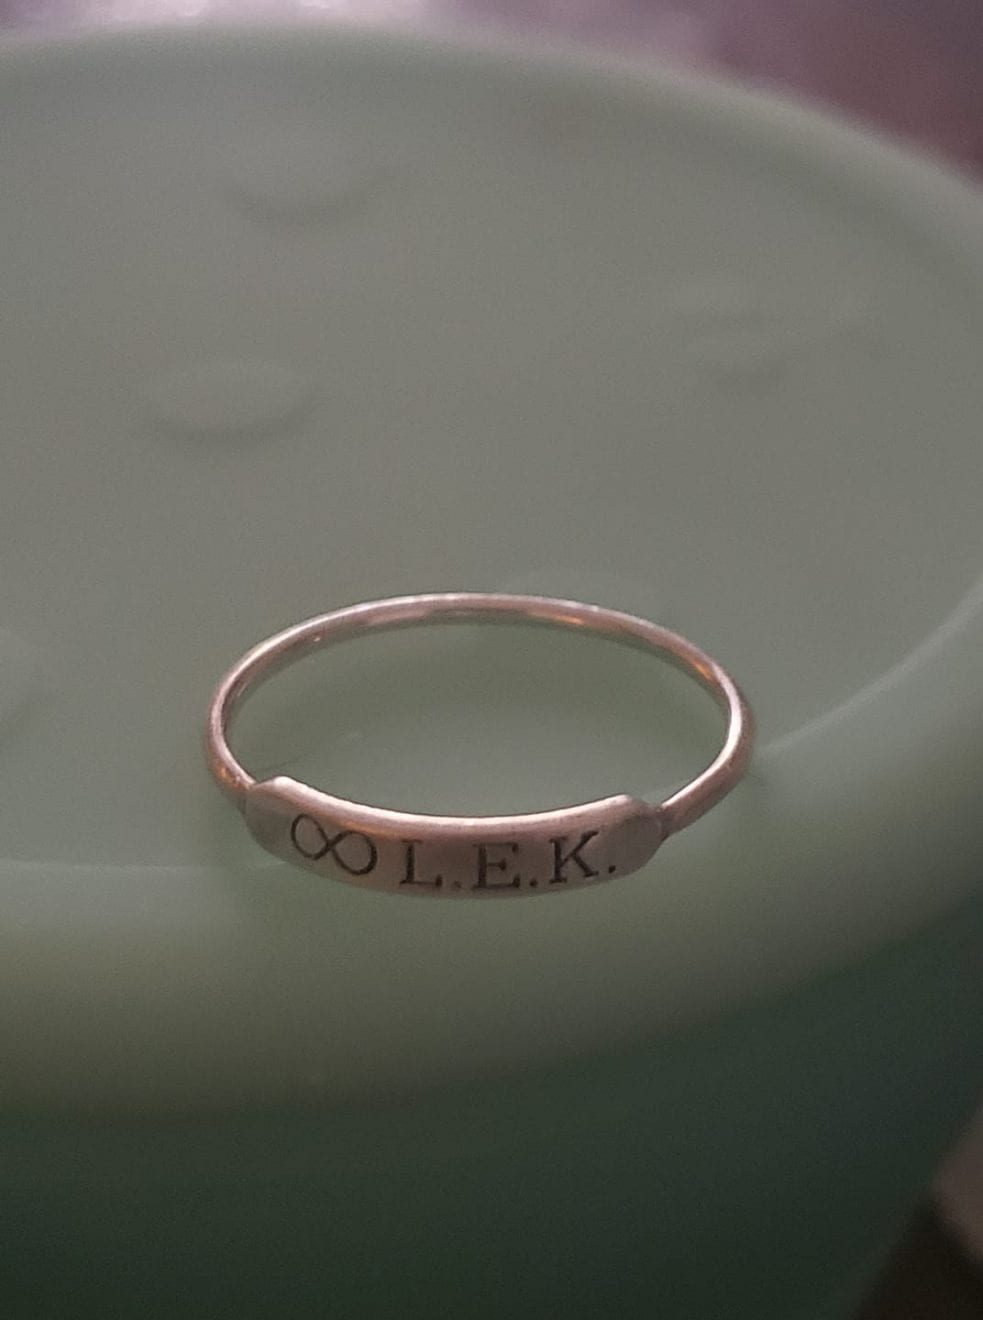 Ring for Luna, Estrella, and Kira, contributed by mother Saira